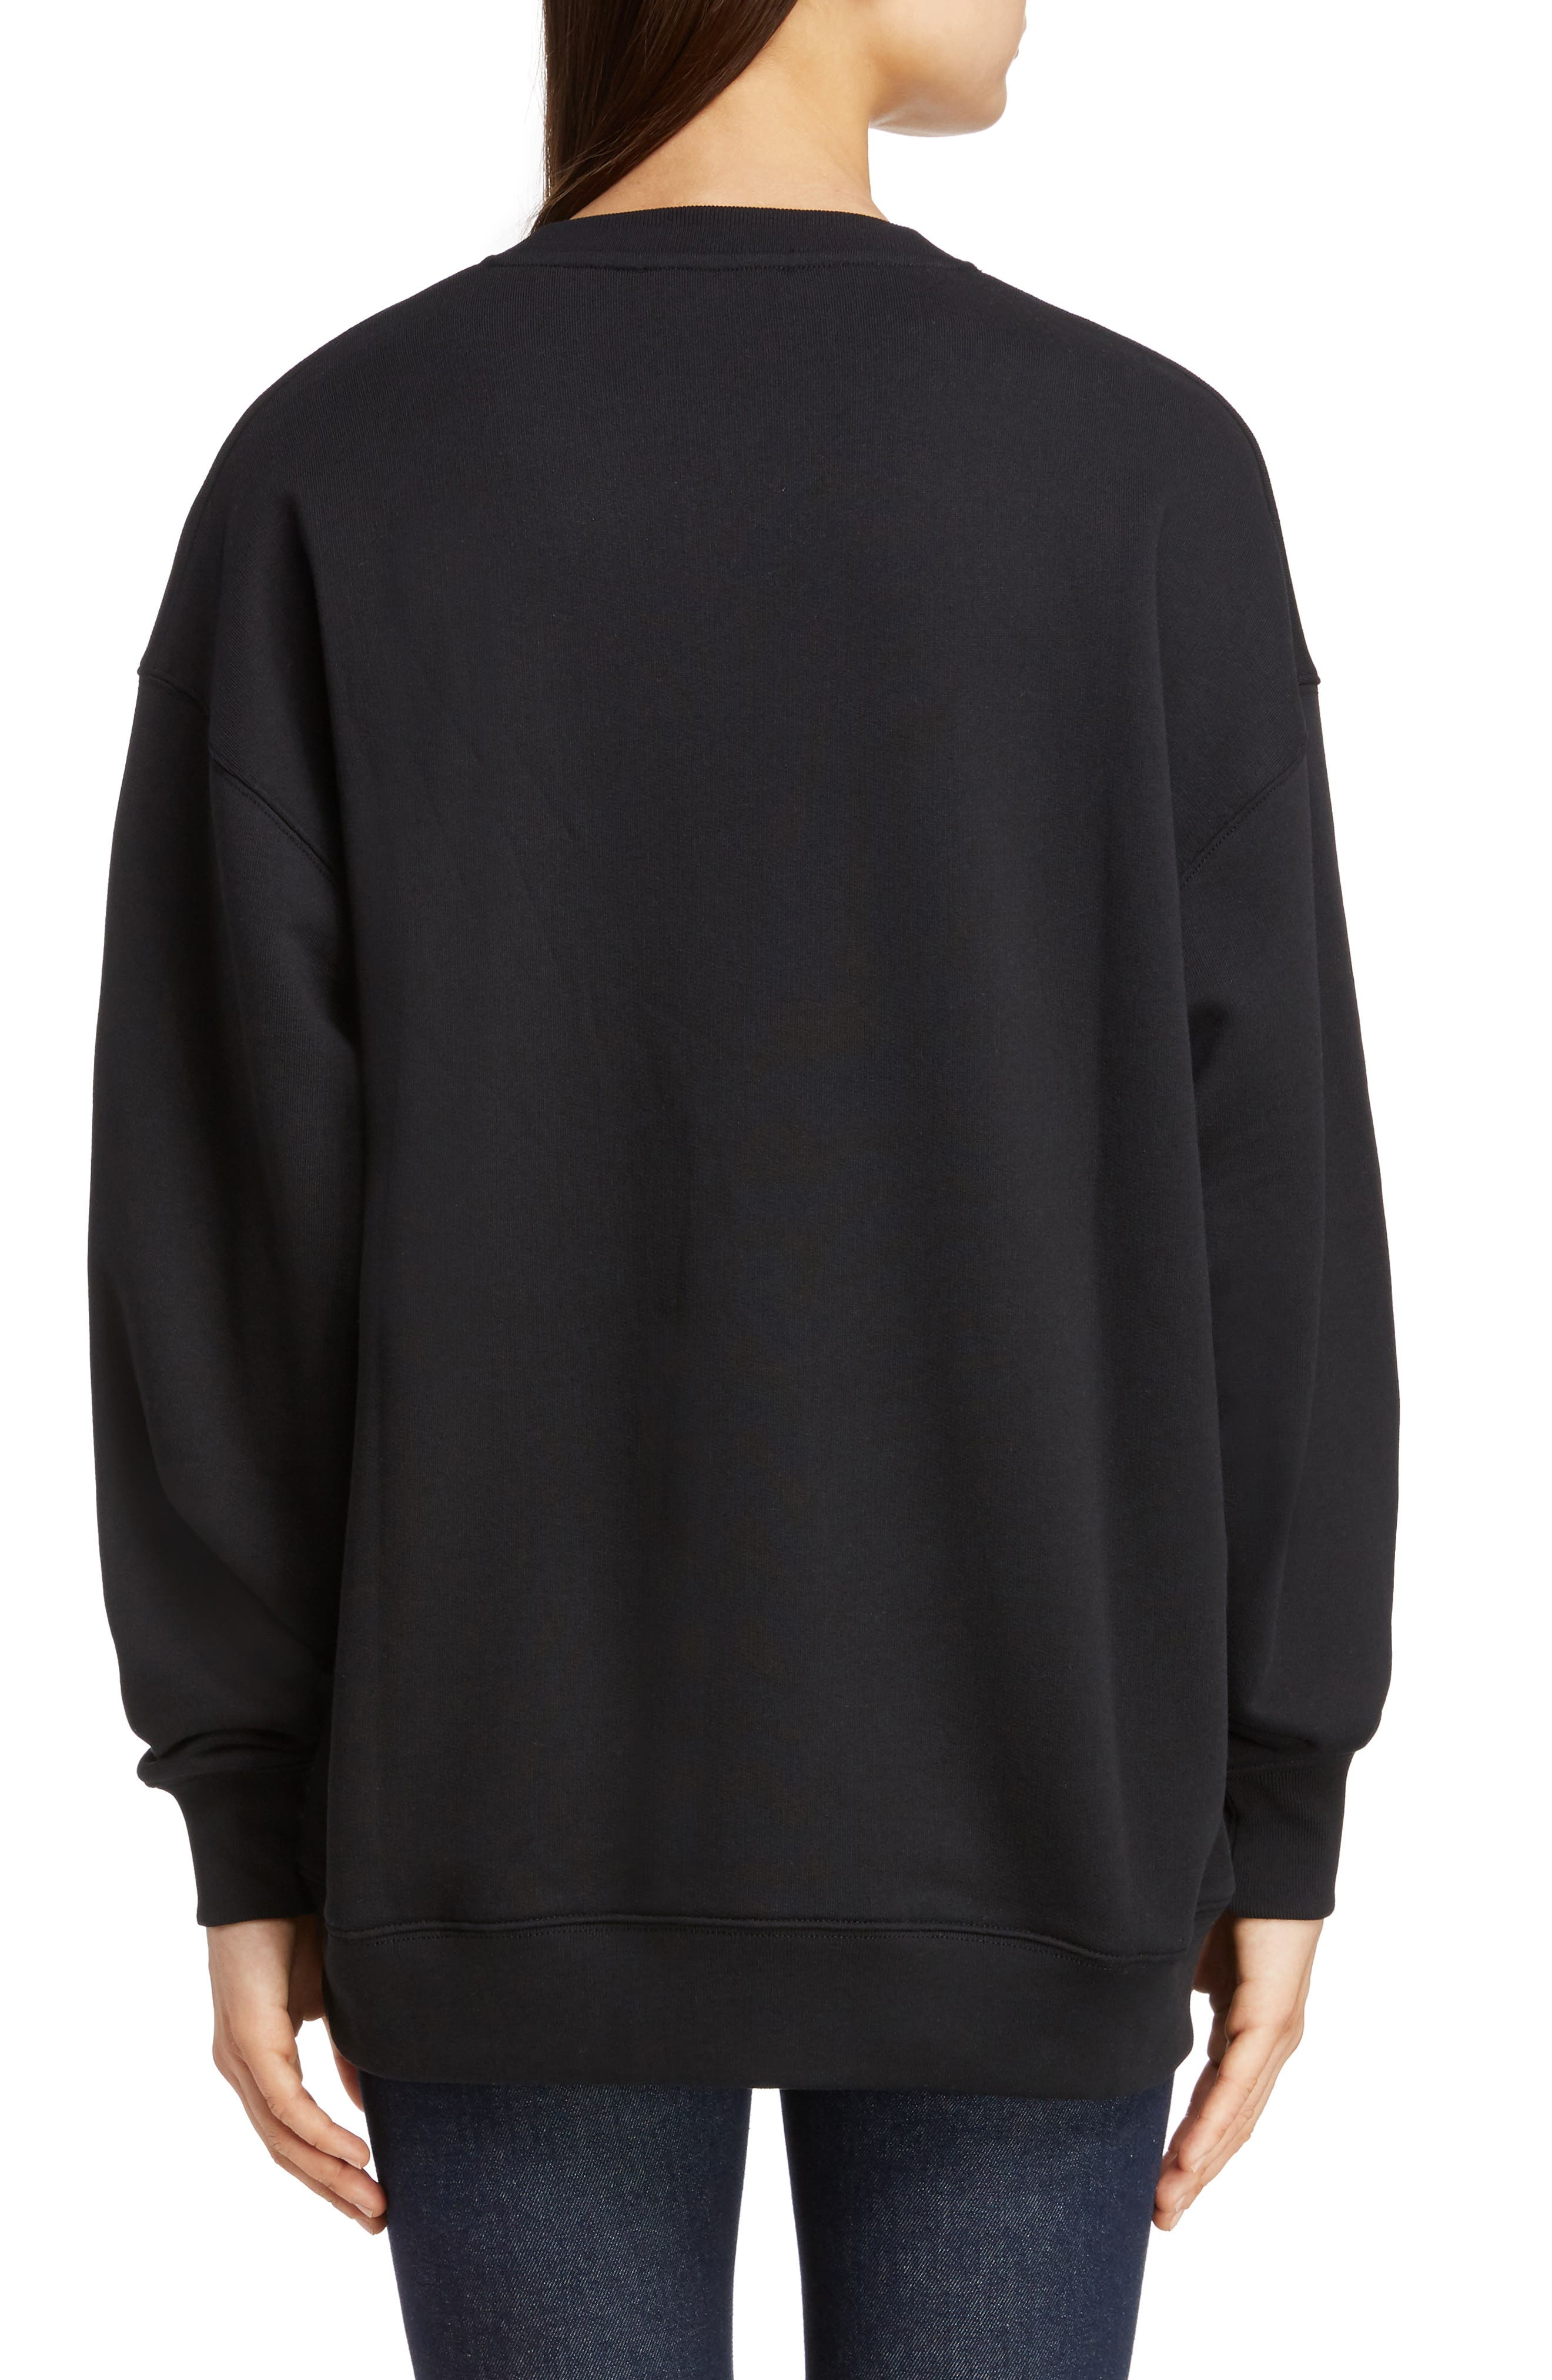 ACNE STUDIOS,                             Forba Face Sweatshirt,                             Alternate thumbnail 2, color,                             BLACK